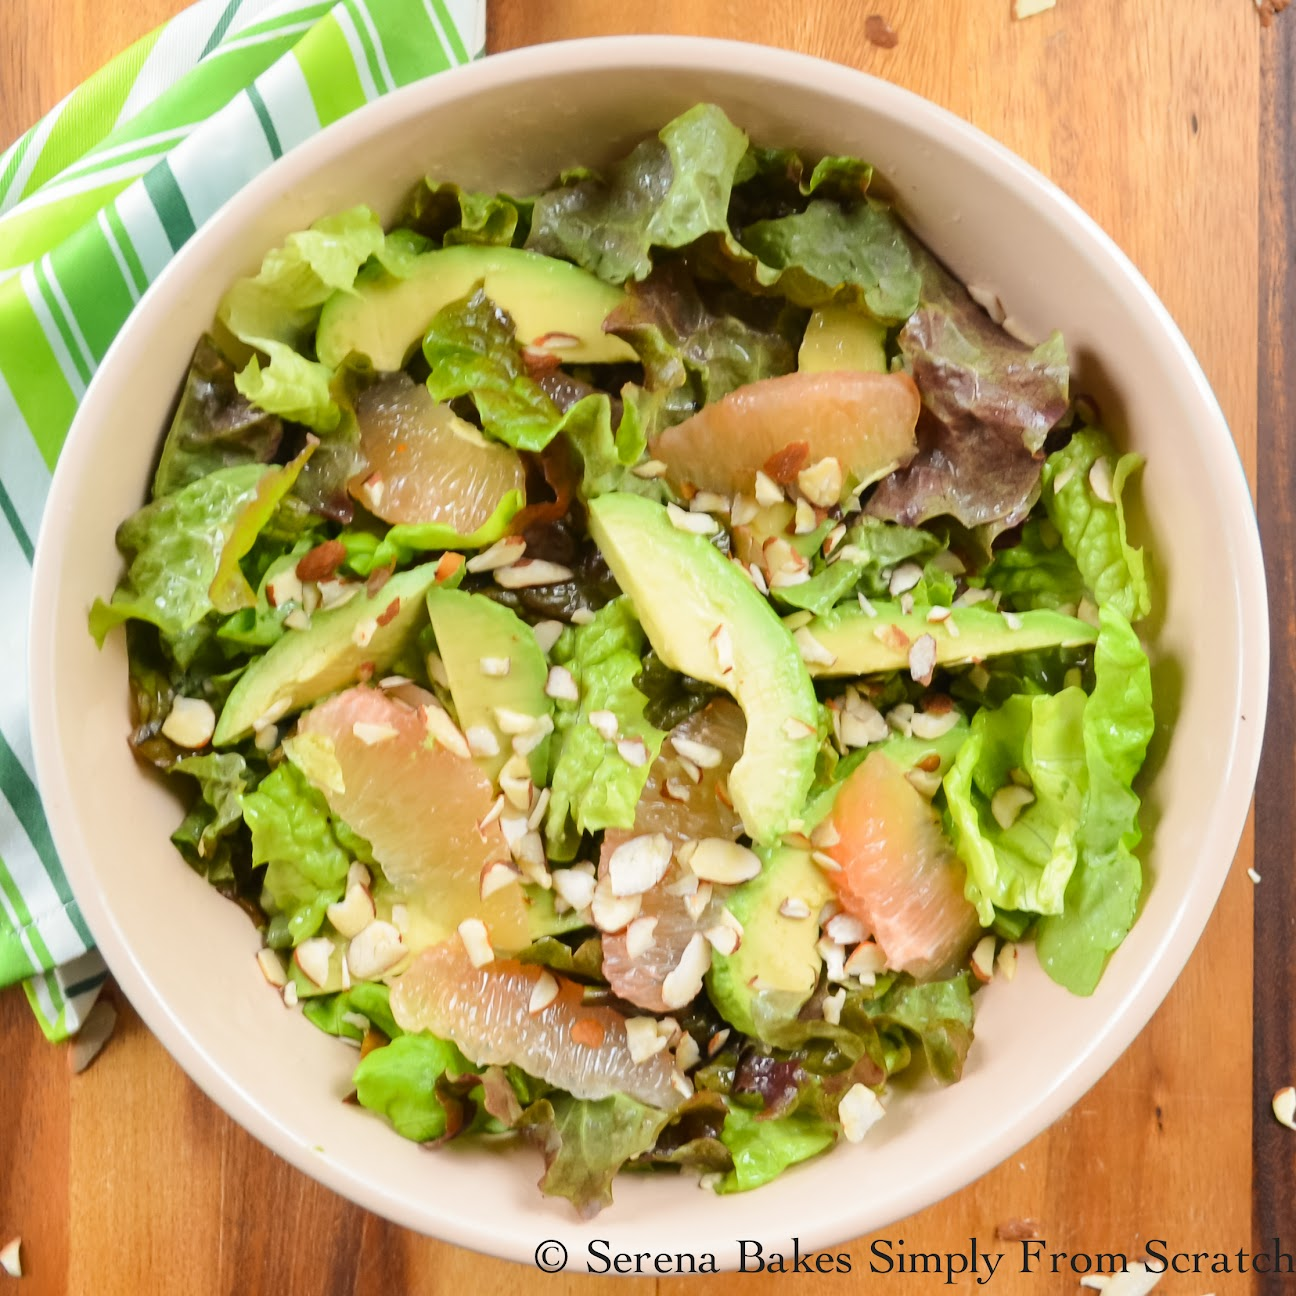 Grapefruit Avocado Salad With Grapefruit Vinaigrette- 17 Healthy Salads That Don't Taste Like Rabbit Food. serenabakessimplyfromscratch.com